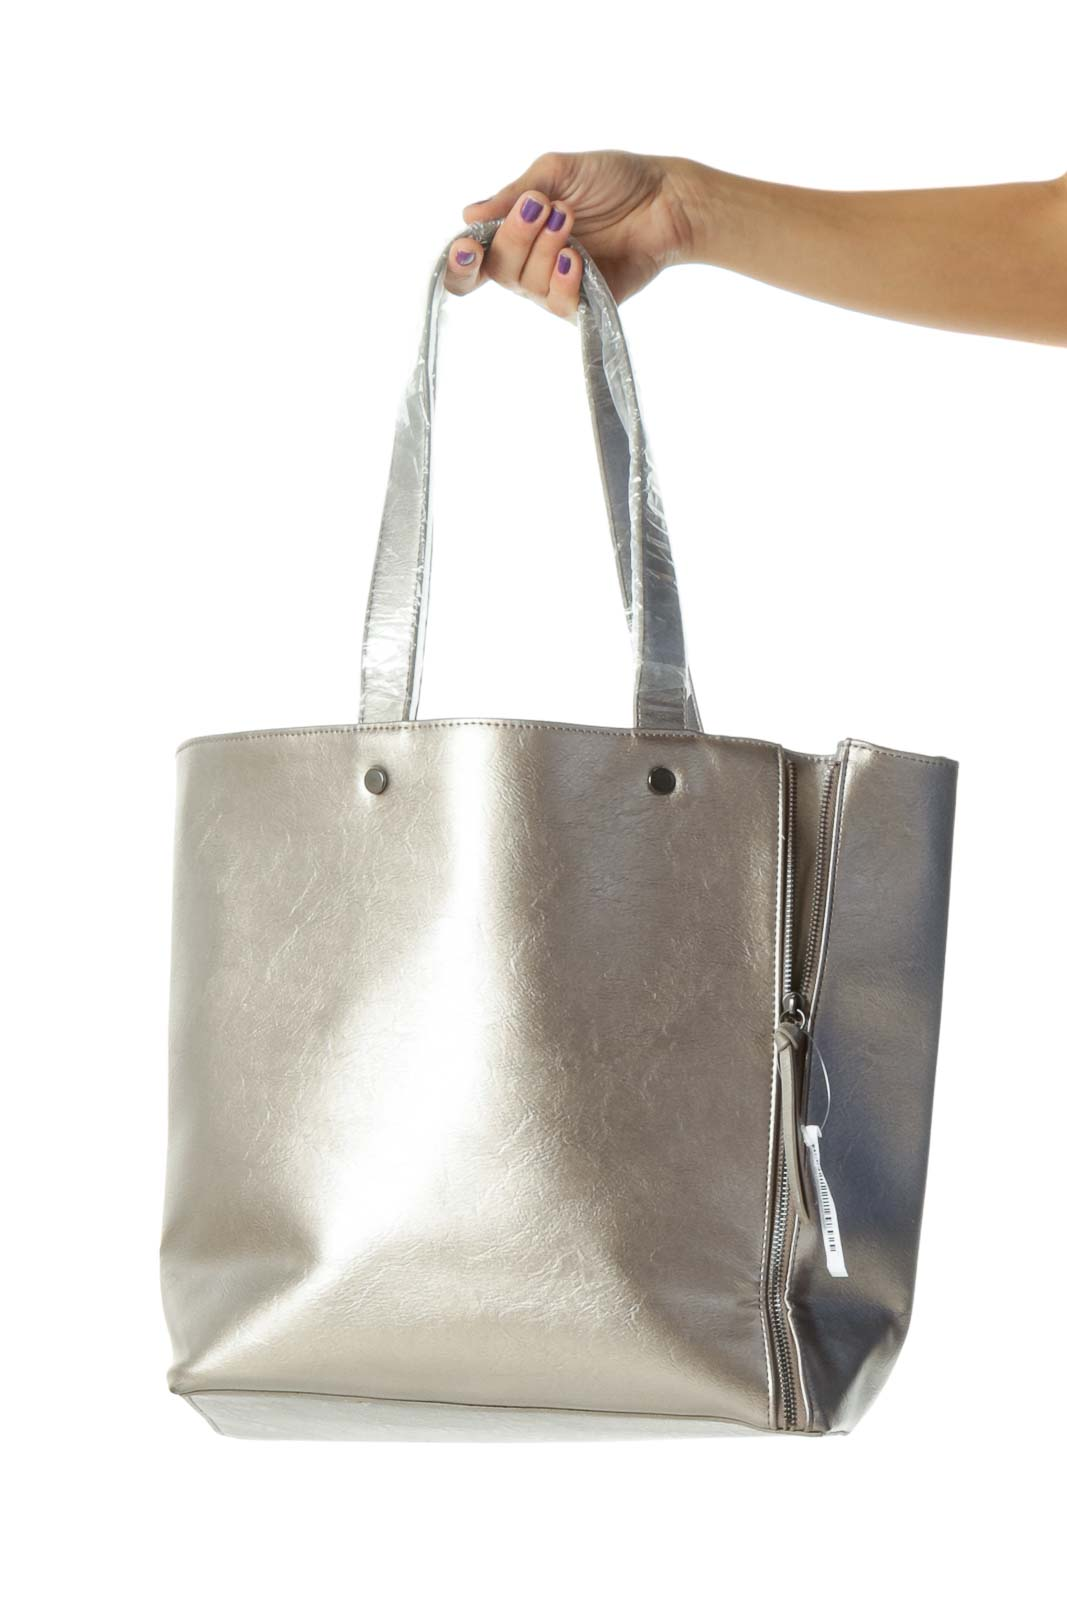 Silver Gray Open Zippers and Tassels Details Open Tote